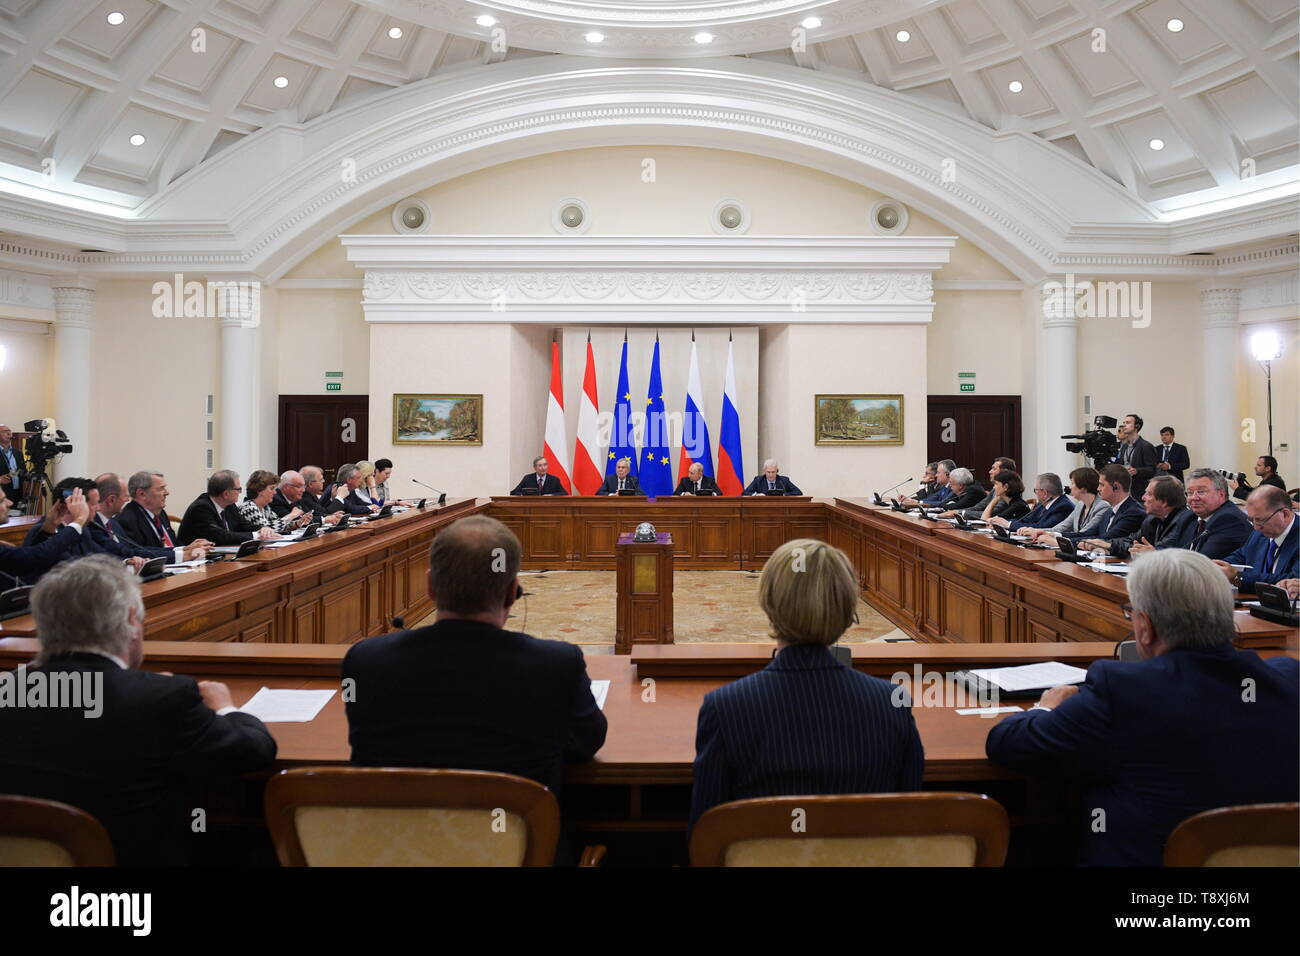 Sochi, Russia. 15th May, 2019. SOCHI, RUSSIA - MAY 15, 2019: Christoph Leitl, President of the Association of European Chambers of Commerce and Industry (Eurochambres), Austria's President Alexander Van der Bellen, Russia's President Vladimir Putin and his aide Andrei Fursenko (L-R back centre) attend the inaugural meeting of the Sochi Dialogue Forum. Alexei Druzhinin/Russian Presidential Press and Information Office/TASS Credit: ITAR-TASS News Agency/Alamy Live News - Stock Image